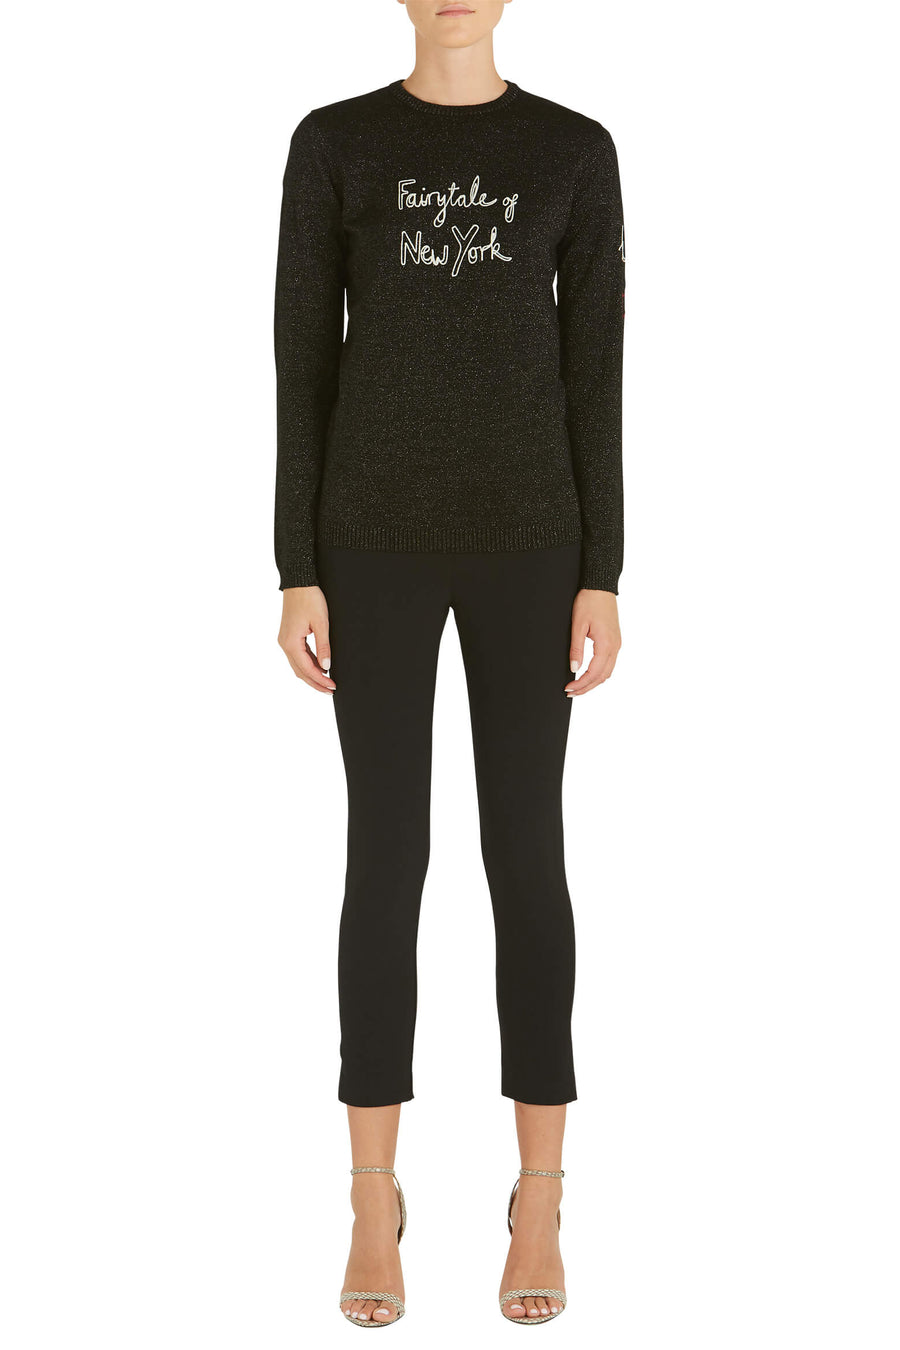 Bella-Freud-Fairytale-of-New-York-Jumper-Black-The-New-Trend